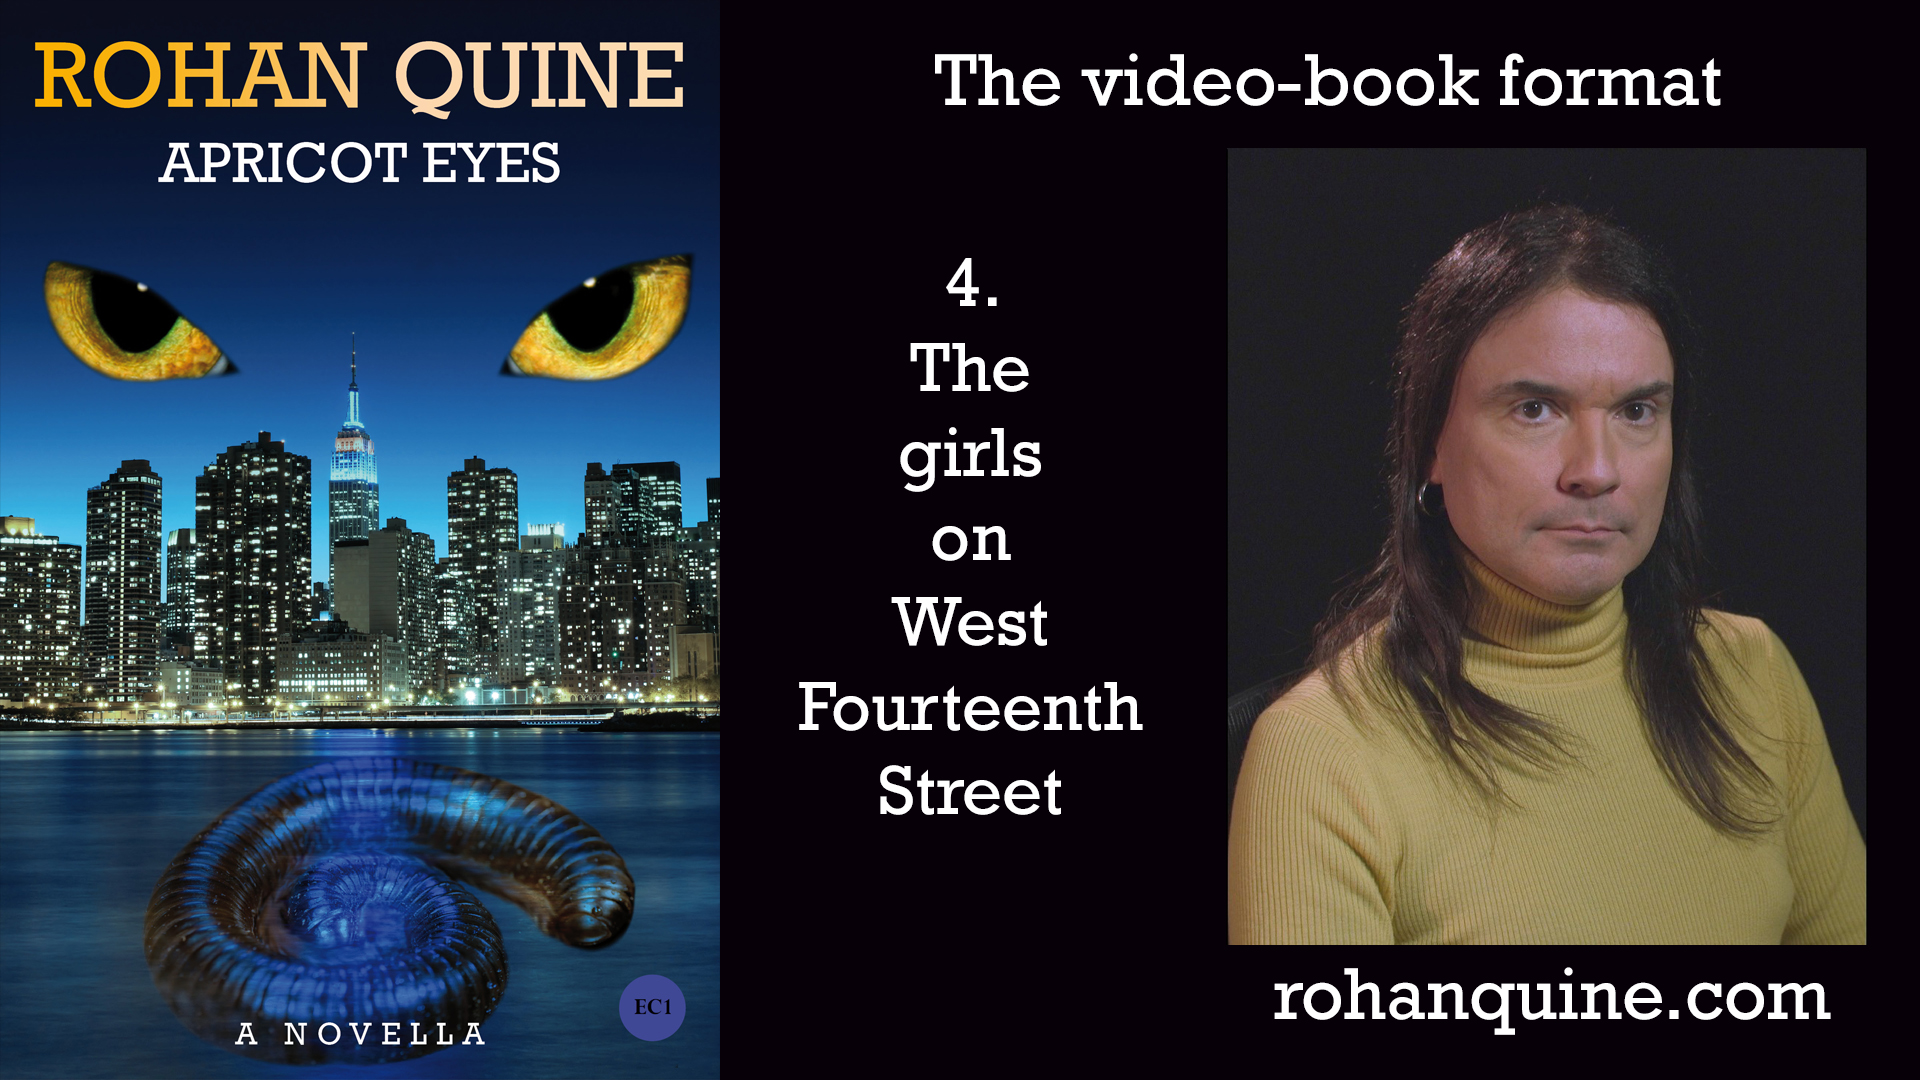 APRICOT EYES by Rohan Quine - video-book format - chapter 4